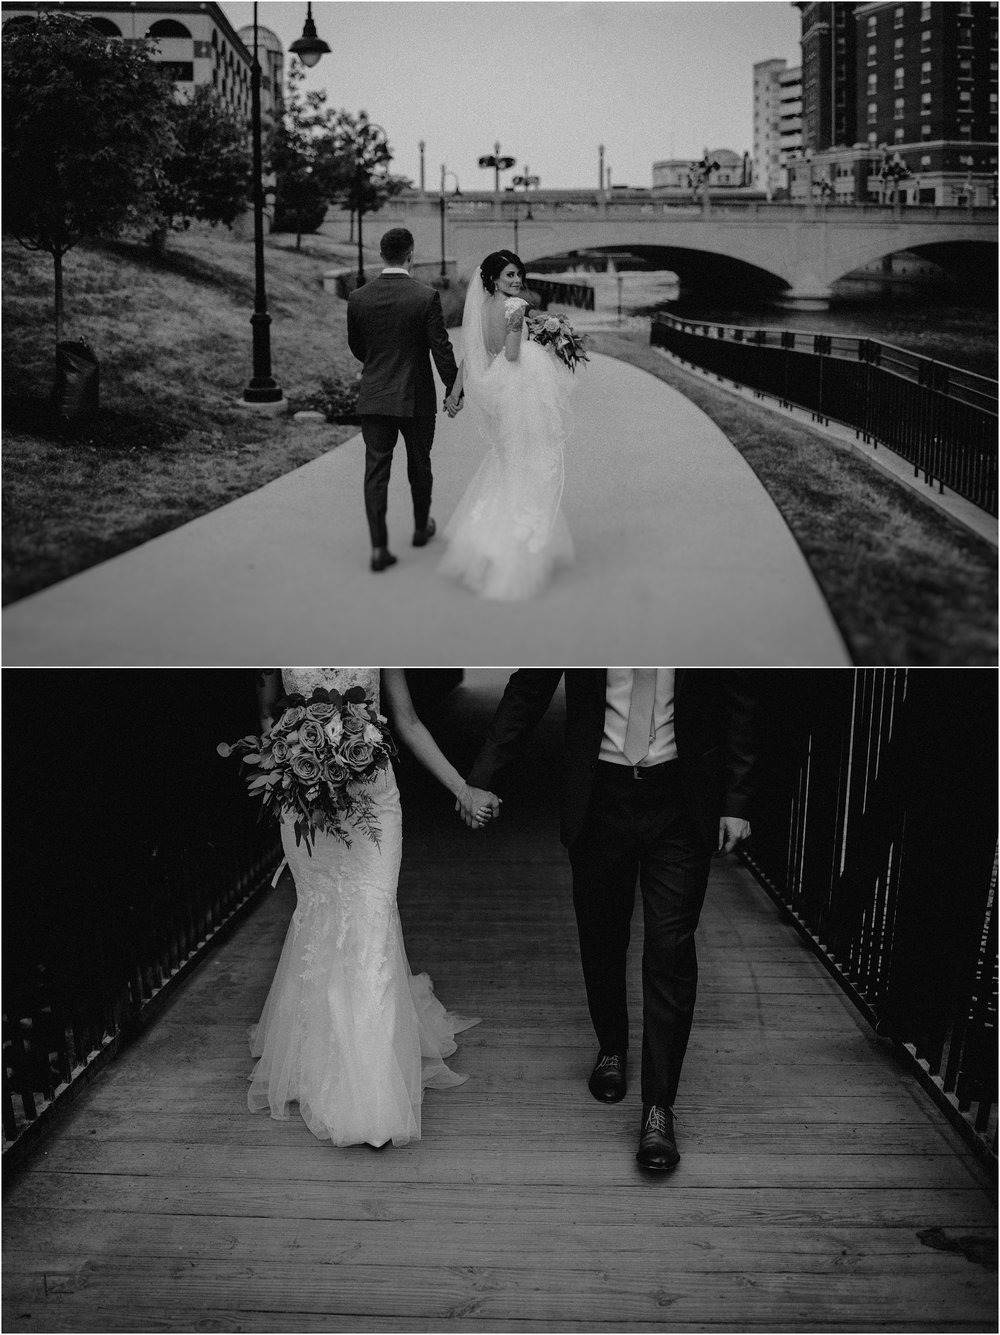 Bride and groom walk beneath the bridge in Aurora, Illinois